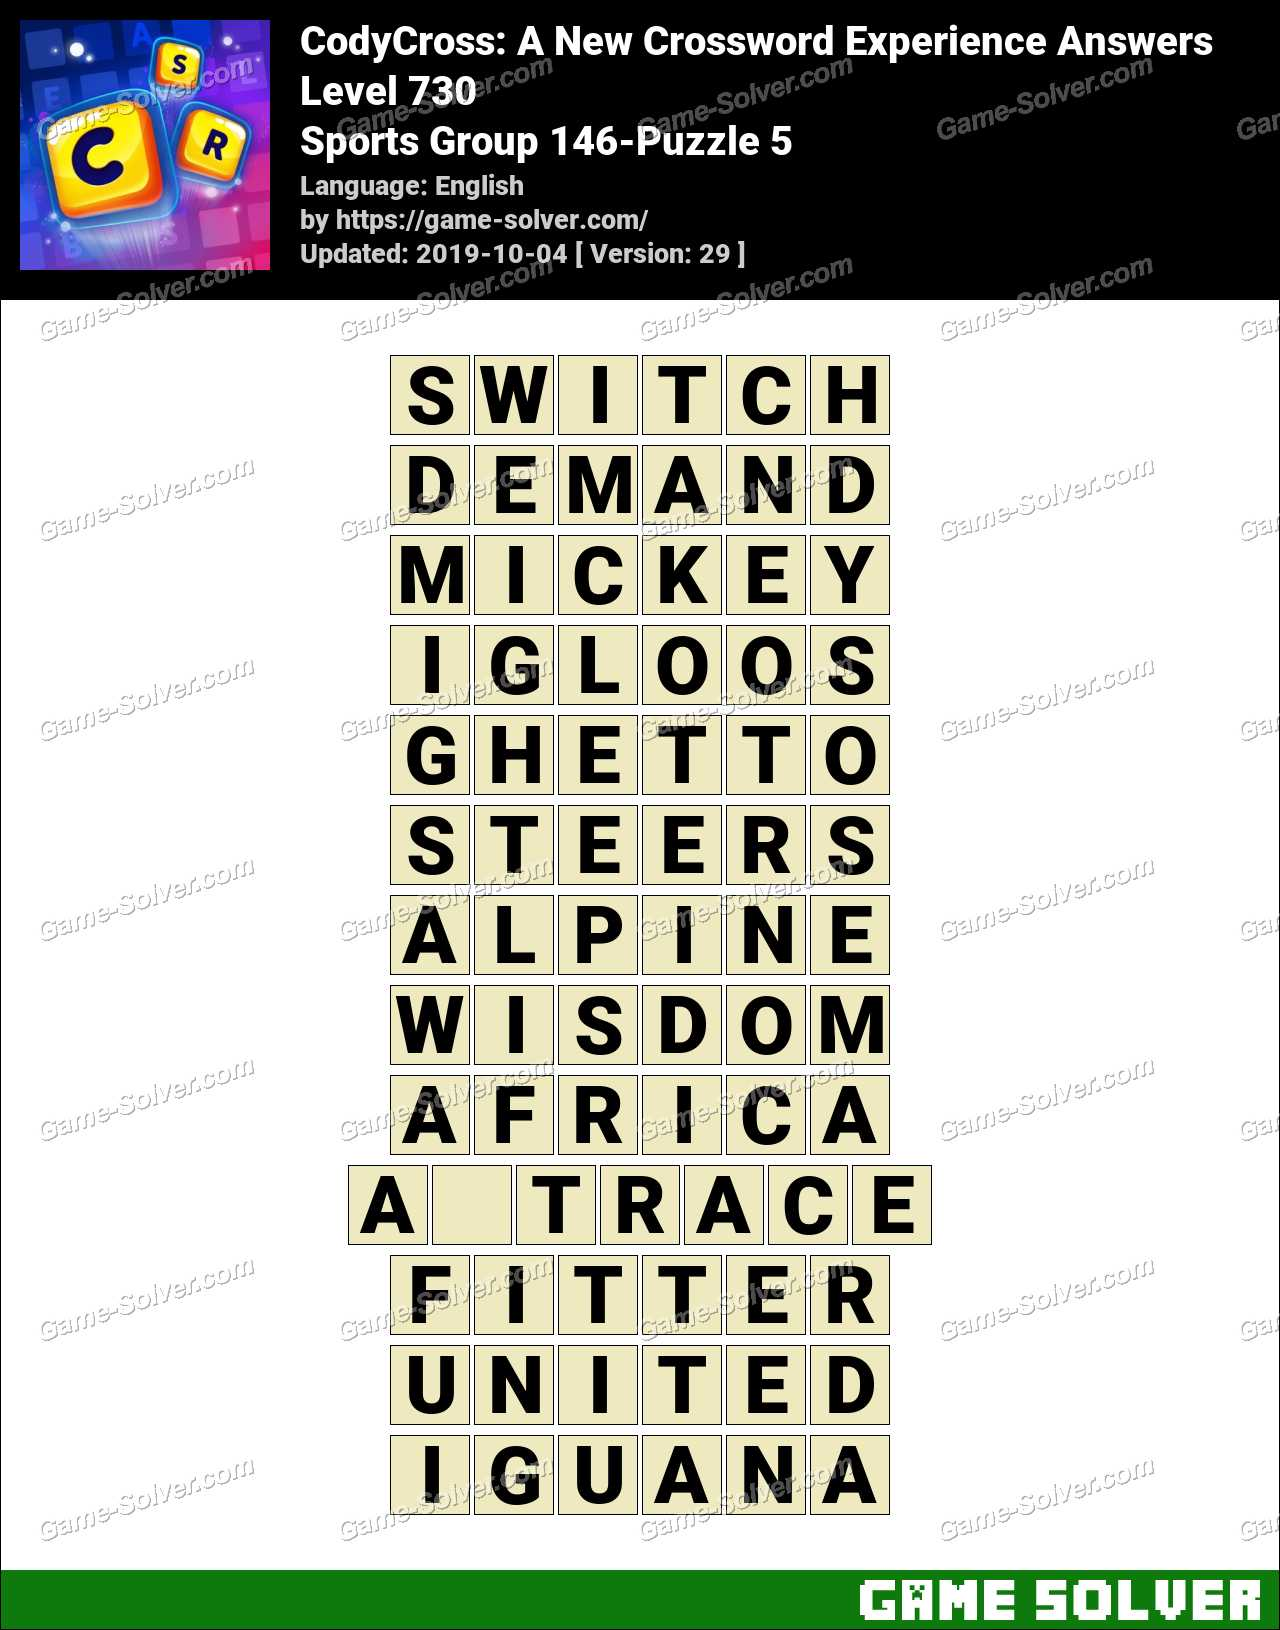 CodyCross Sports Group 146-Puzzle 5 Answers